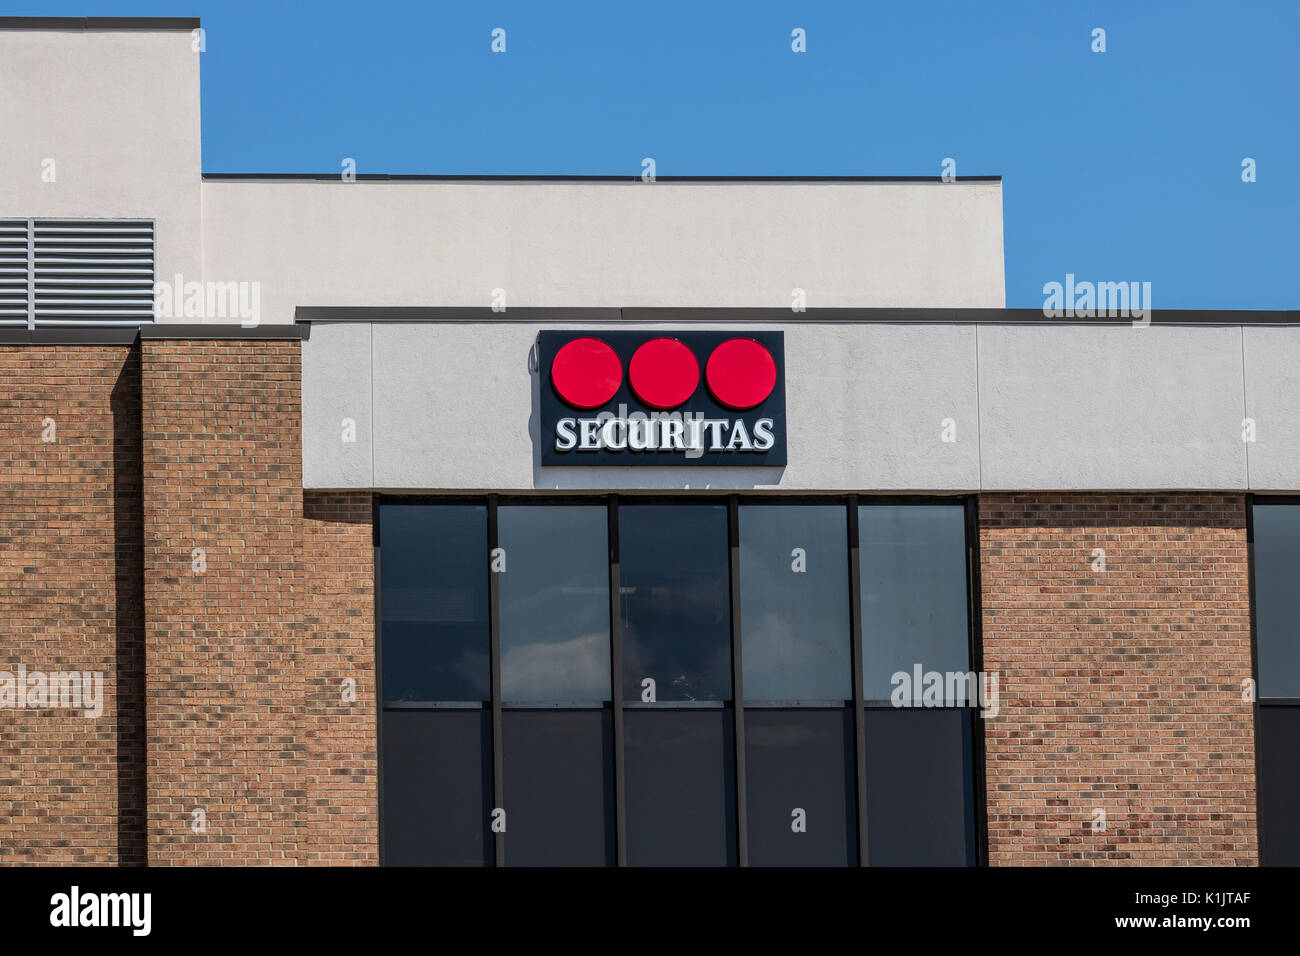 Indianapolis - Circa August 2017: Local Securitas Security location. Headquartered in Stockholm, Securitas provides event and cyber security services  - Stock Image